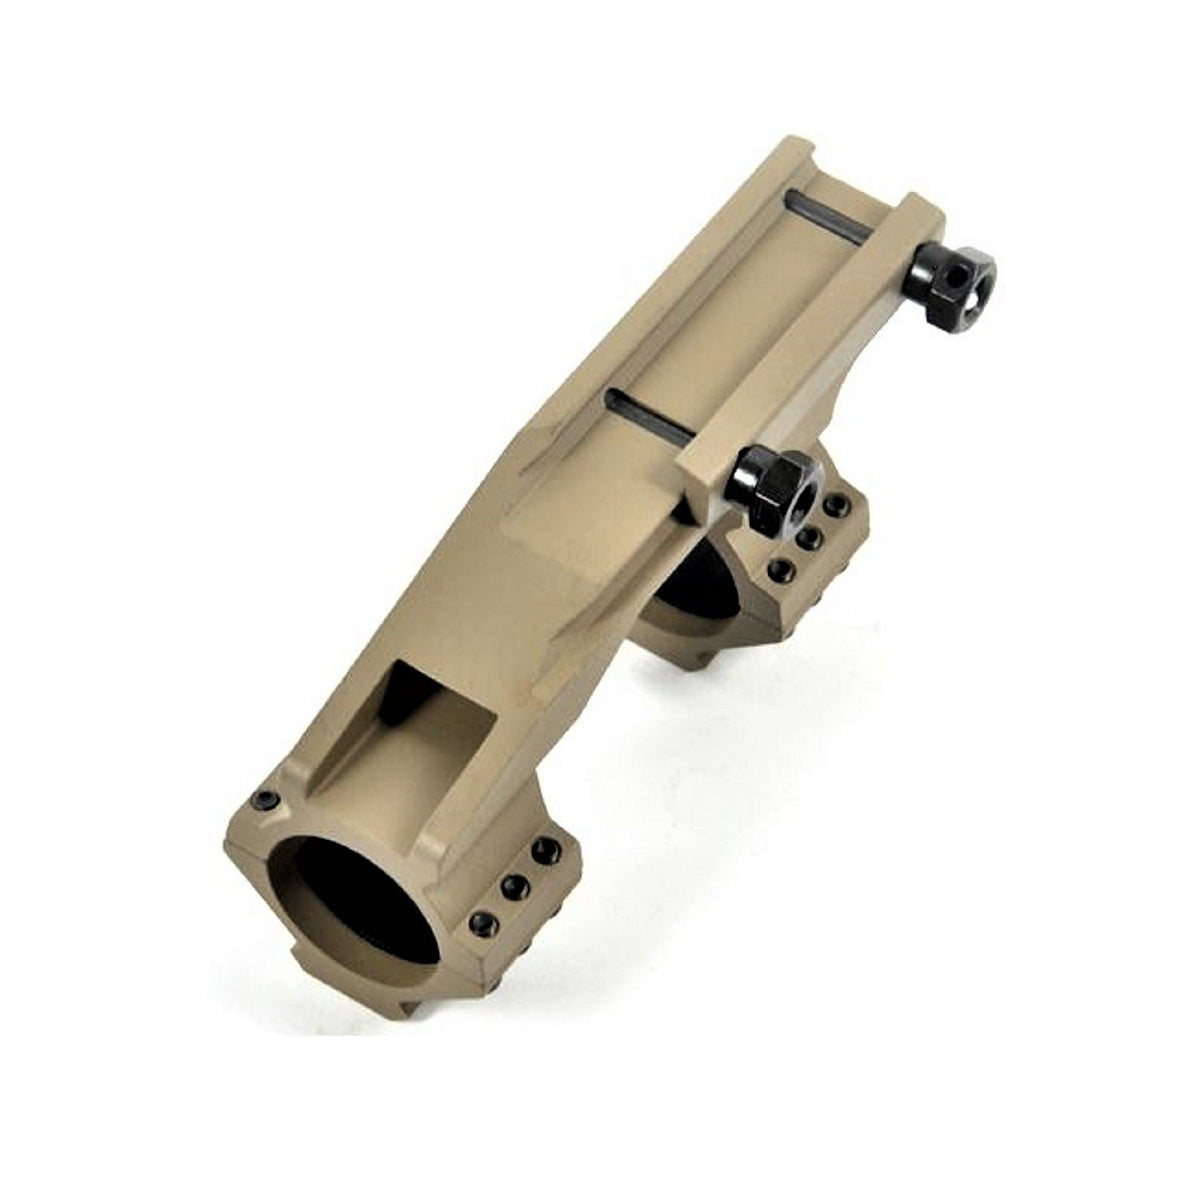 "Dark Earth Cantilever Dual Ring Scope Mount 30mm with 1"" Removable Inserts Scope Mounts Green Blob Outdoors"